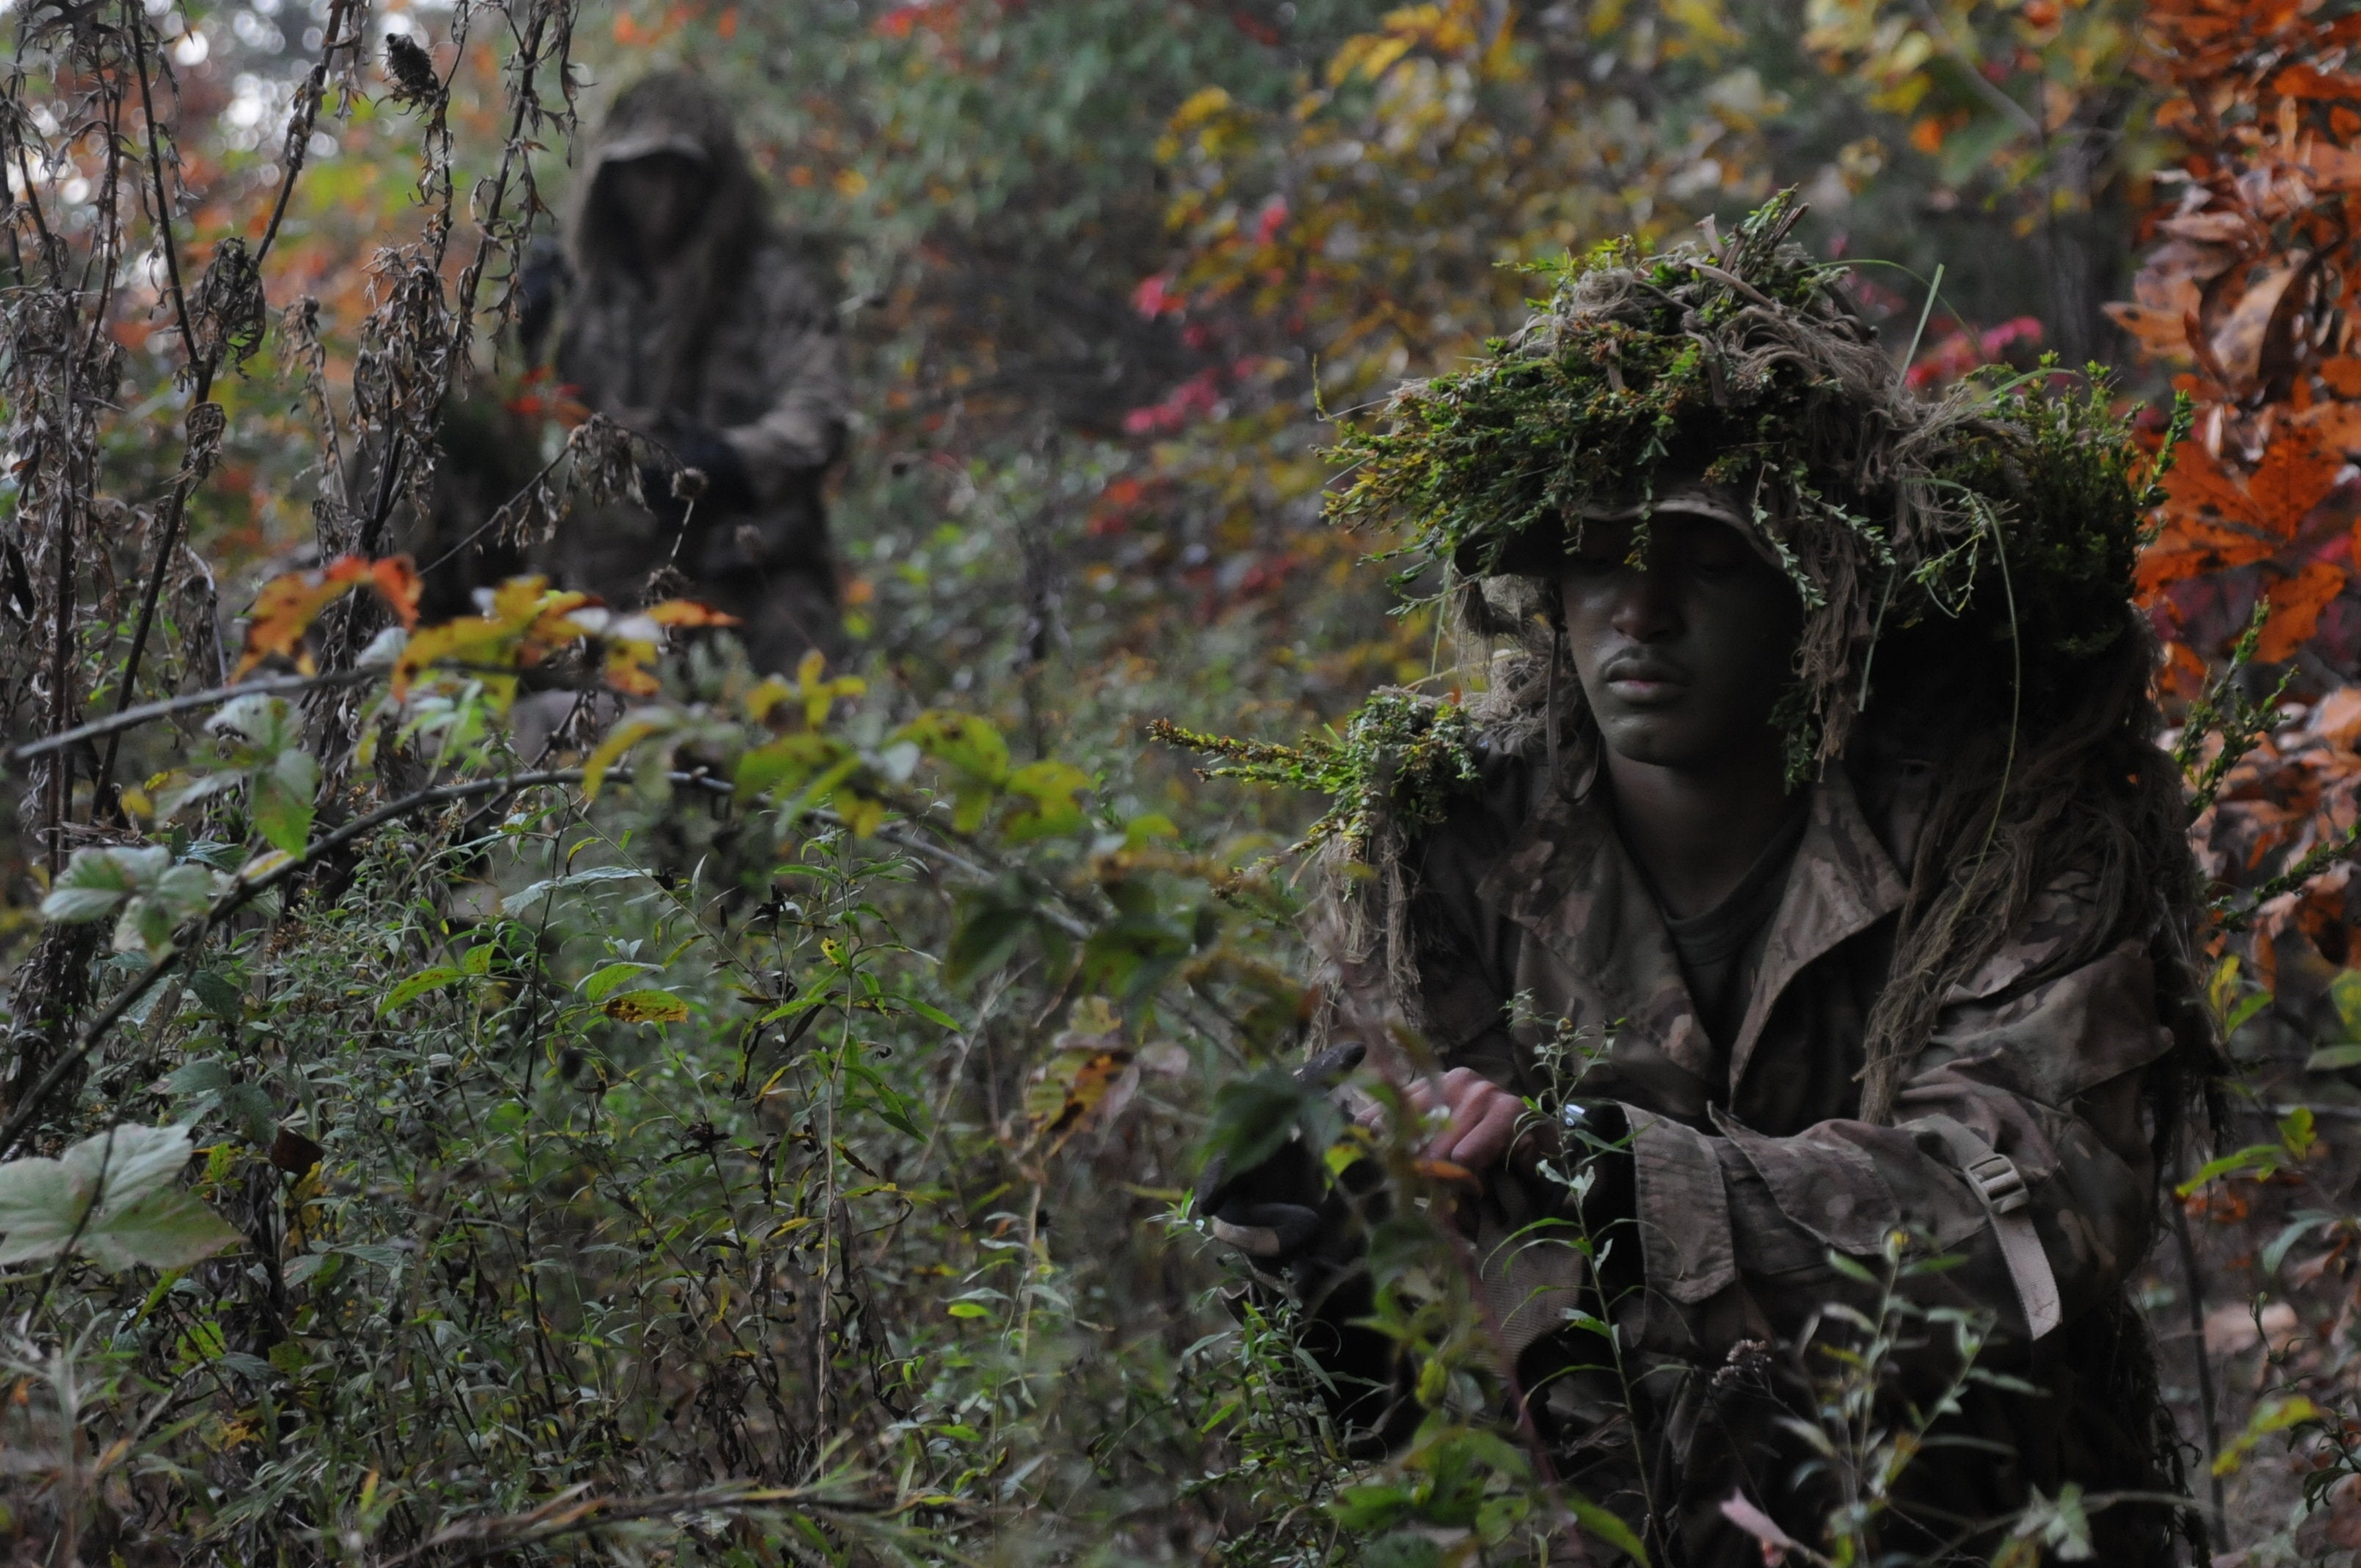 This new camouflage could make troops totally invisible